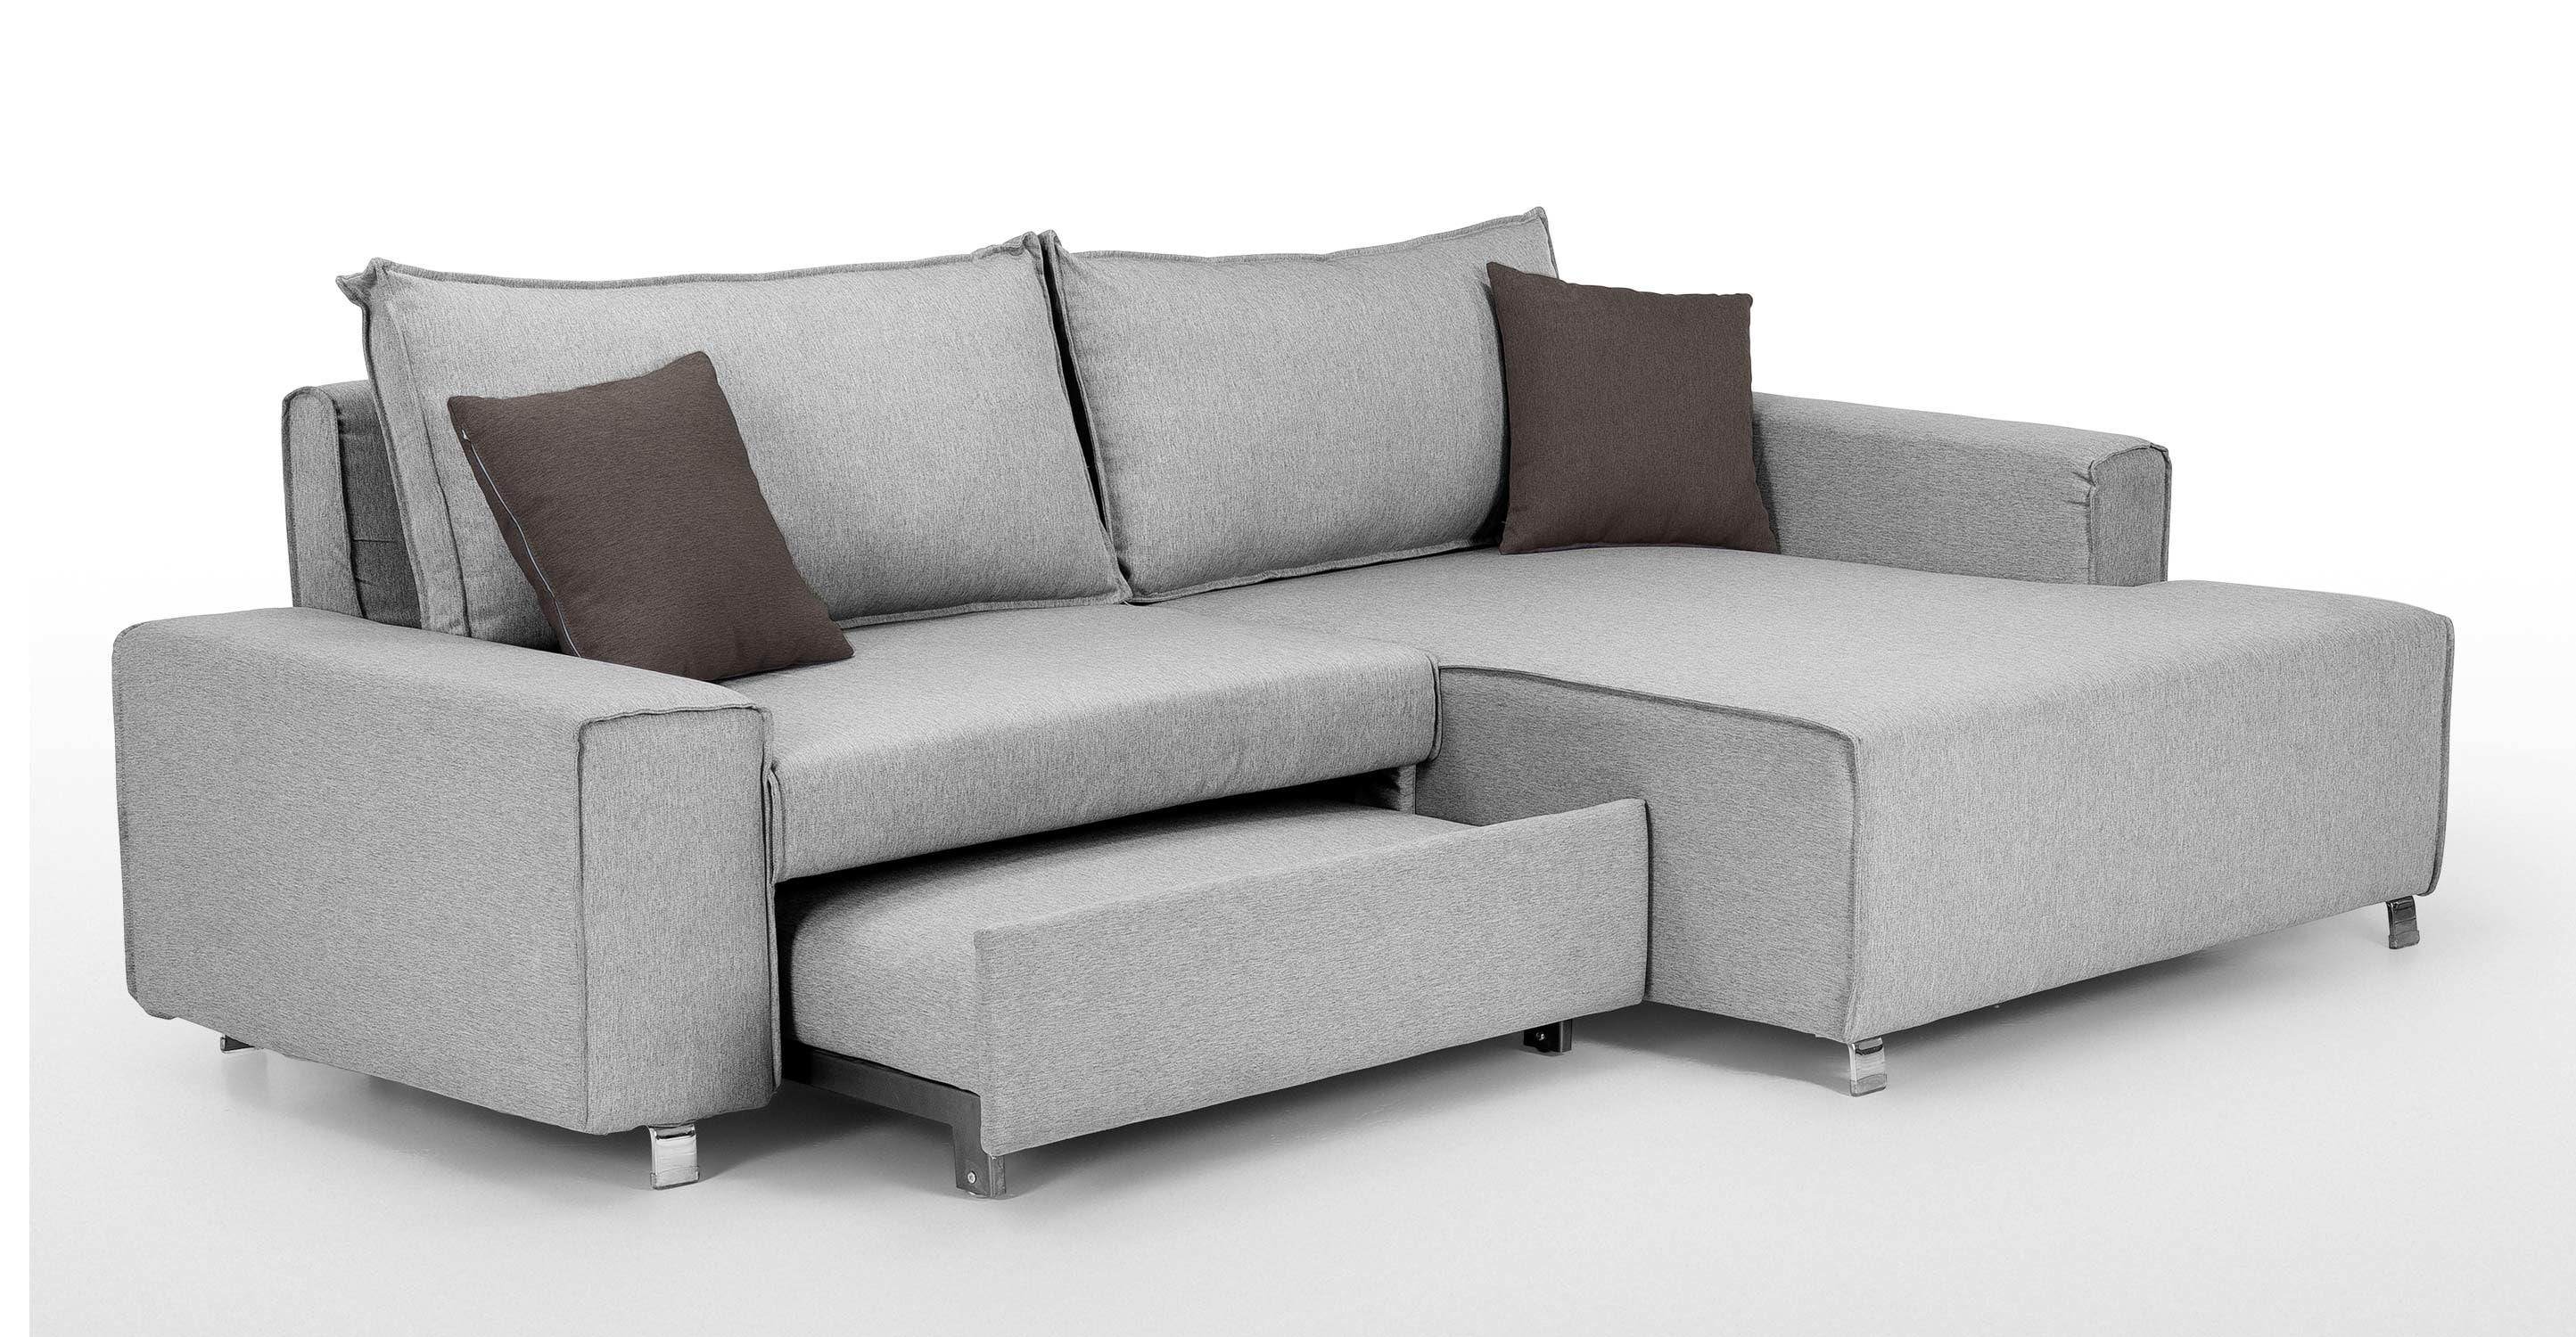 cheap corner sofas on finance sofa bed 100 pounds 20 best beds ideas